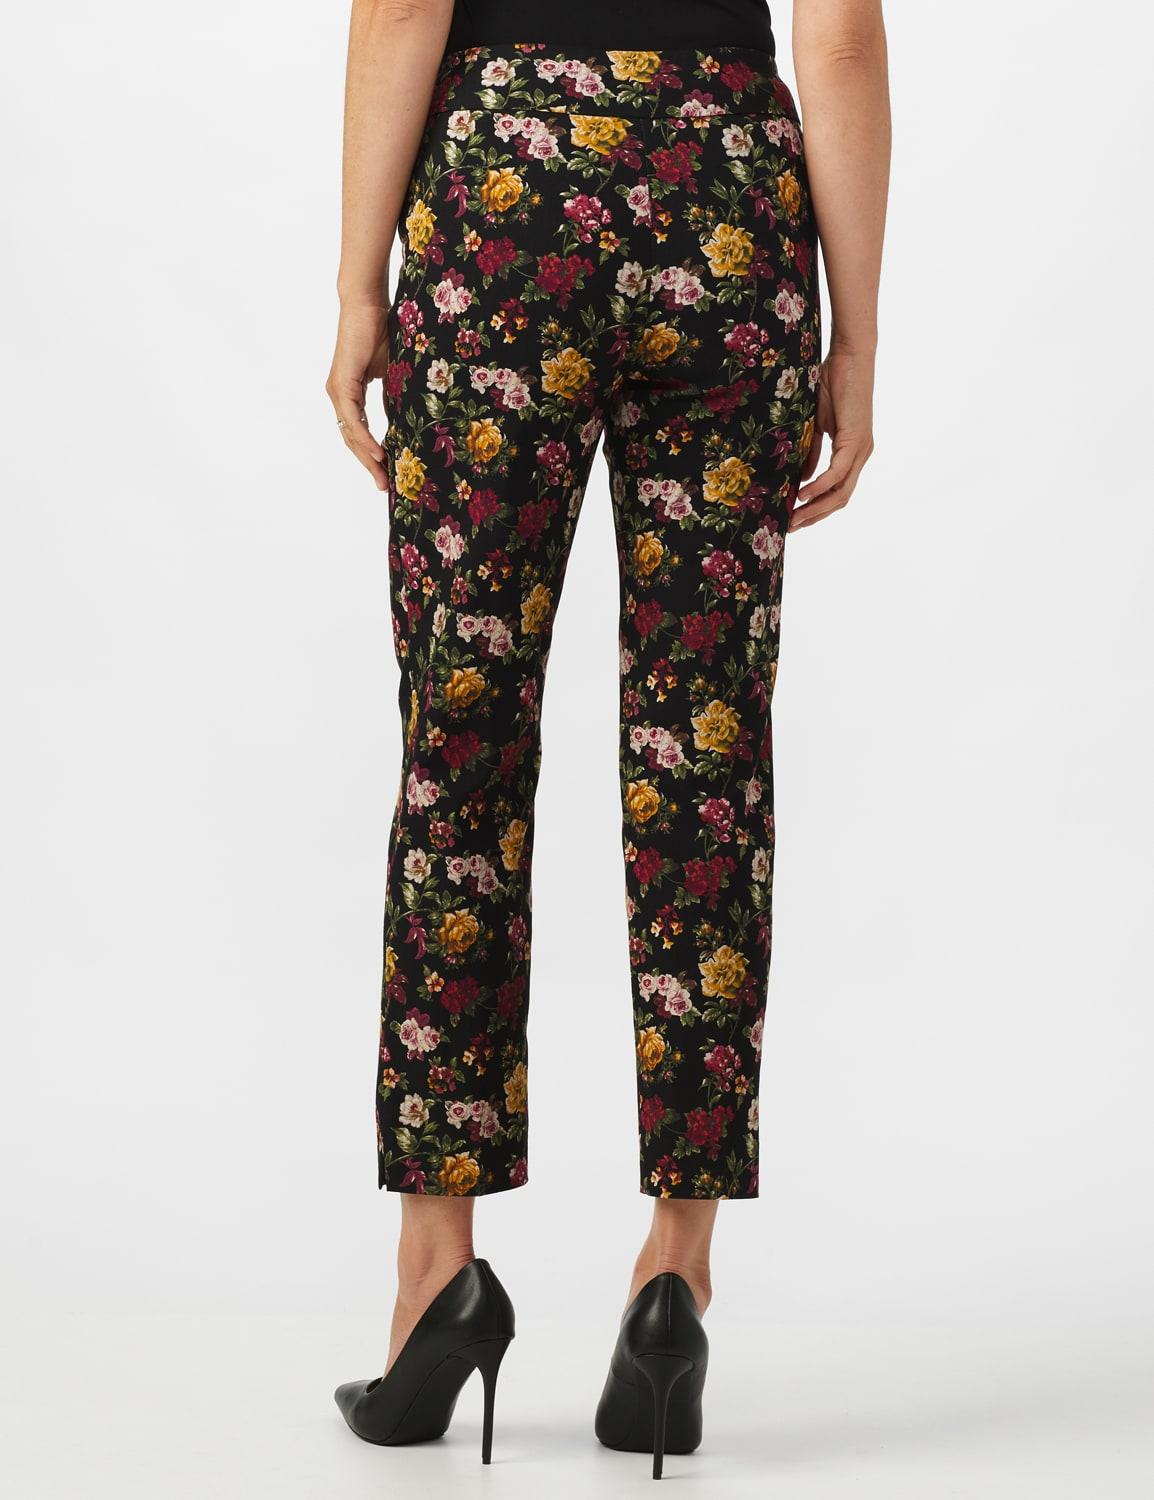 Pull On Floral print Ankle Pants - Black/Wine - Back